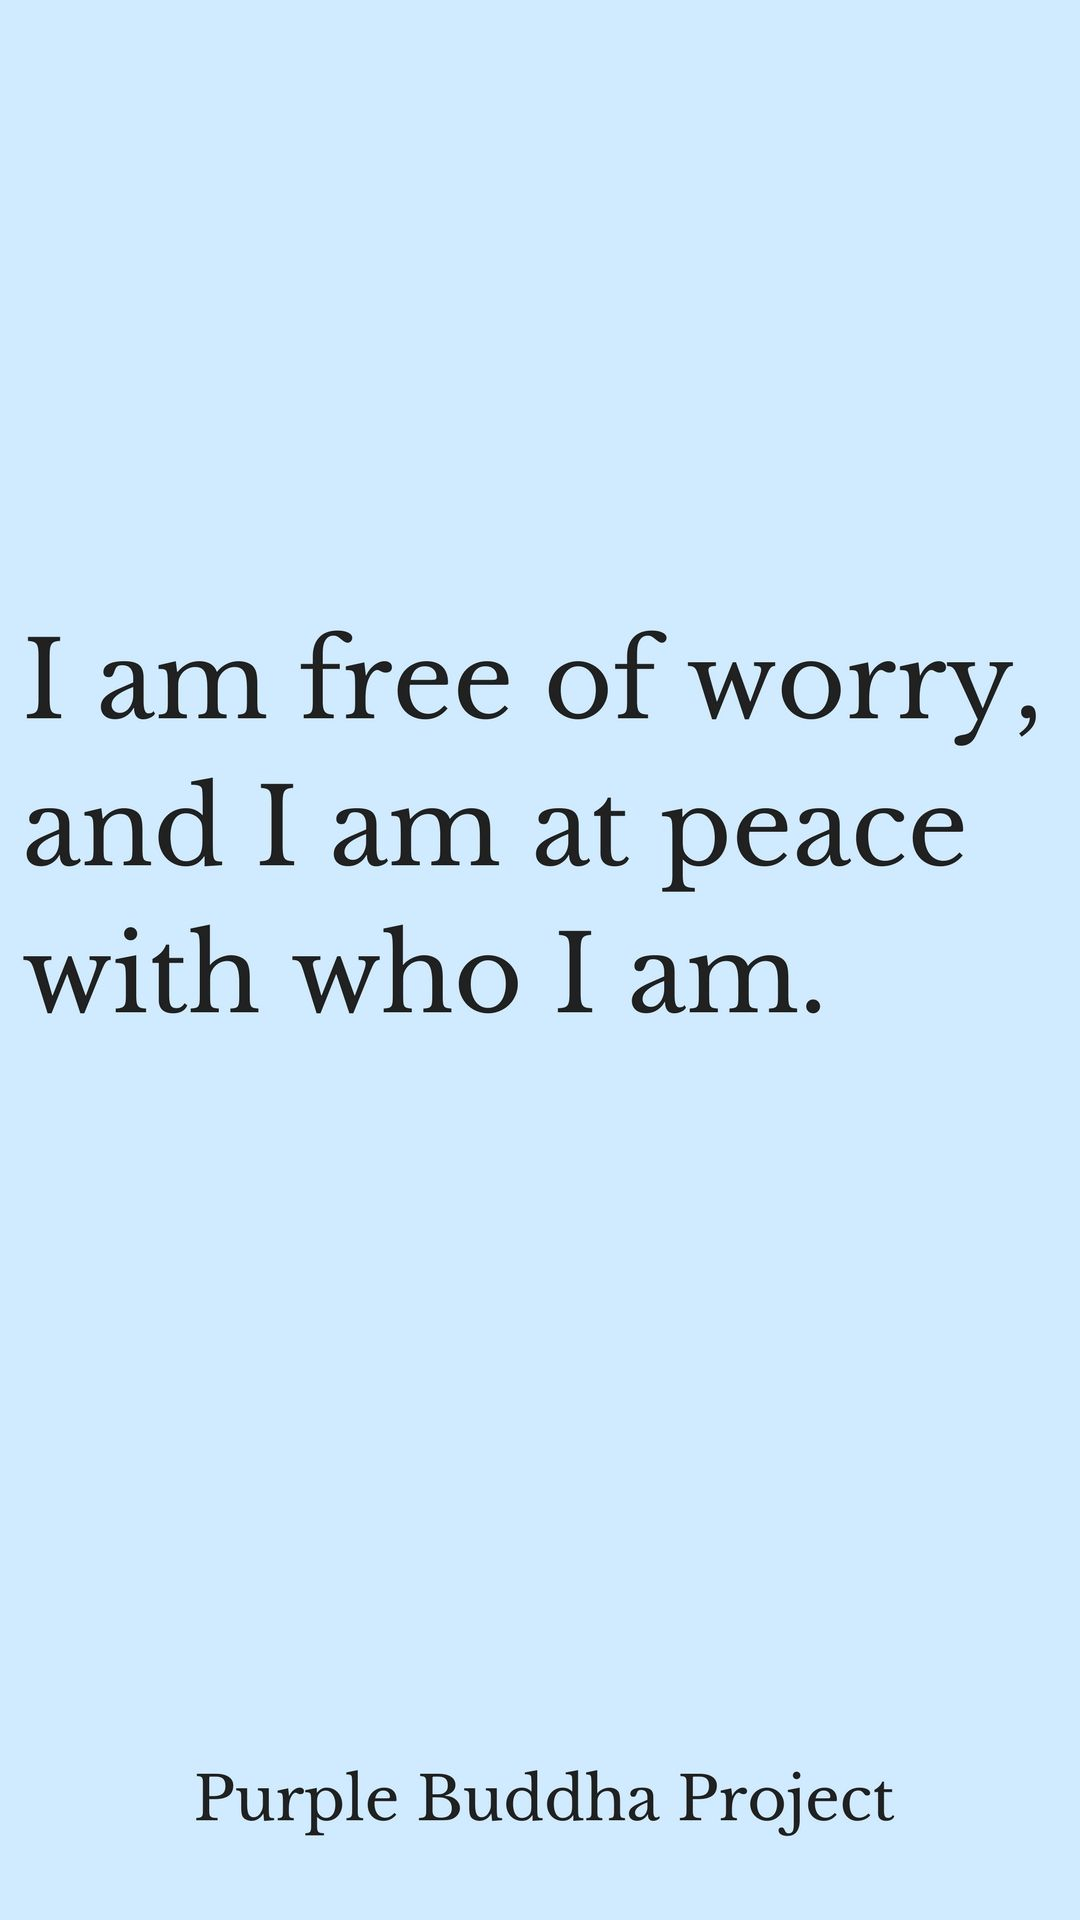 Spiritual Life Quotes And Sayings Buddhist Spiritual Quotes On Happiness And Selflove To Live A Zen